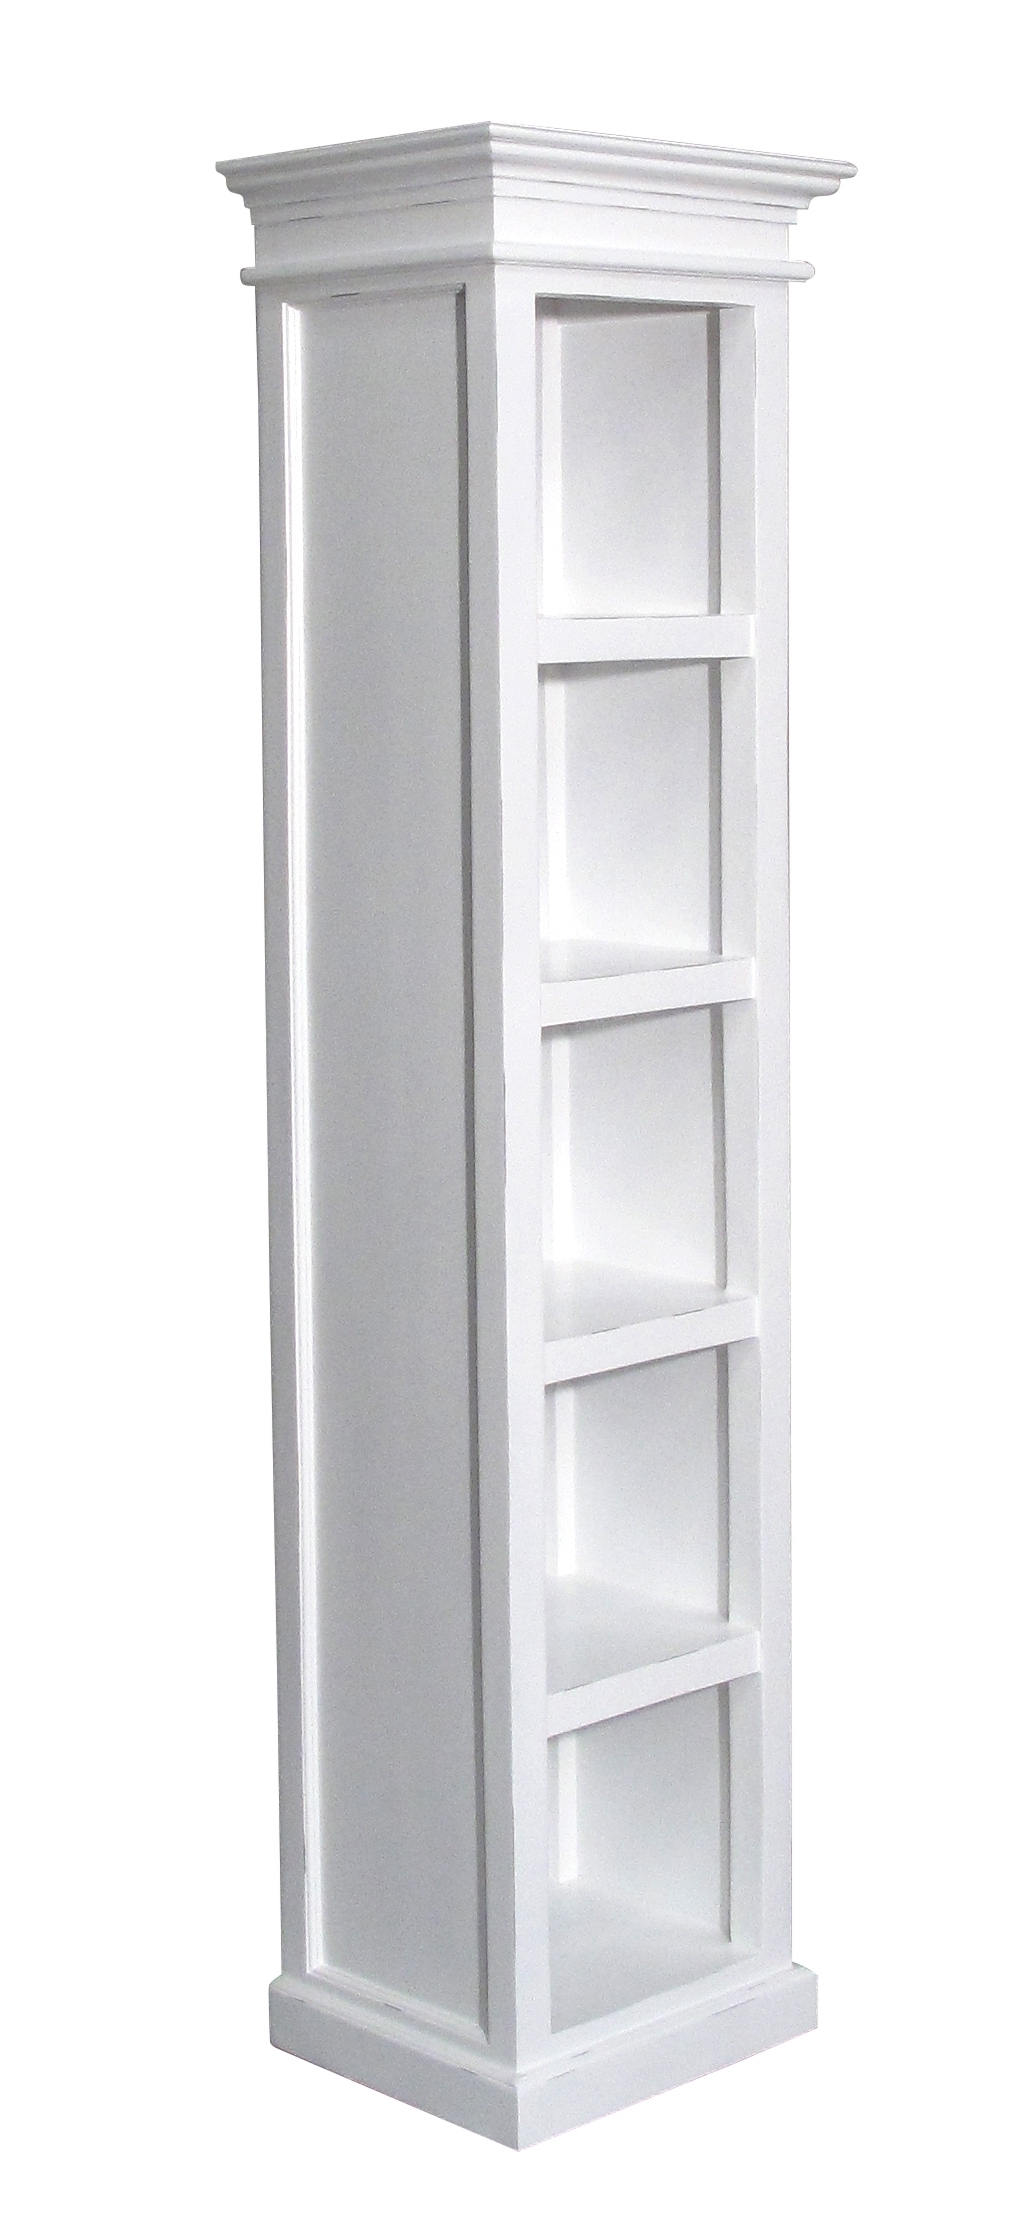 Preferred Tall White Bookcases Pertaining To Tall Slim Bookcase Amazing Picture Design Awesome Thin Ideas Room (View 10 of 15)